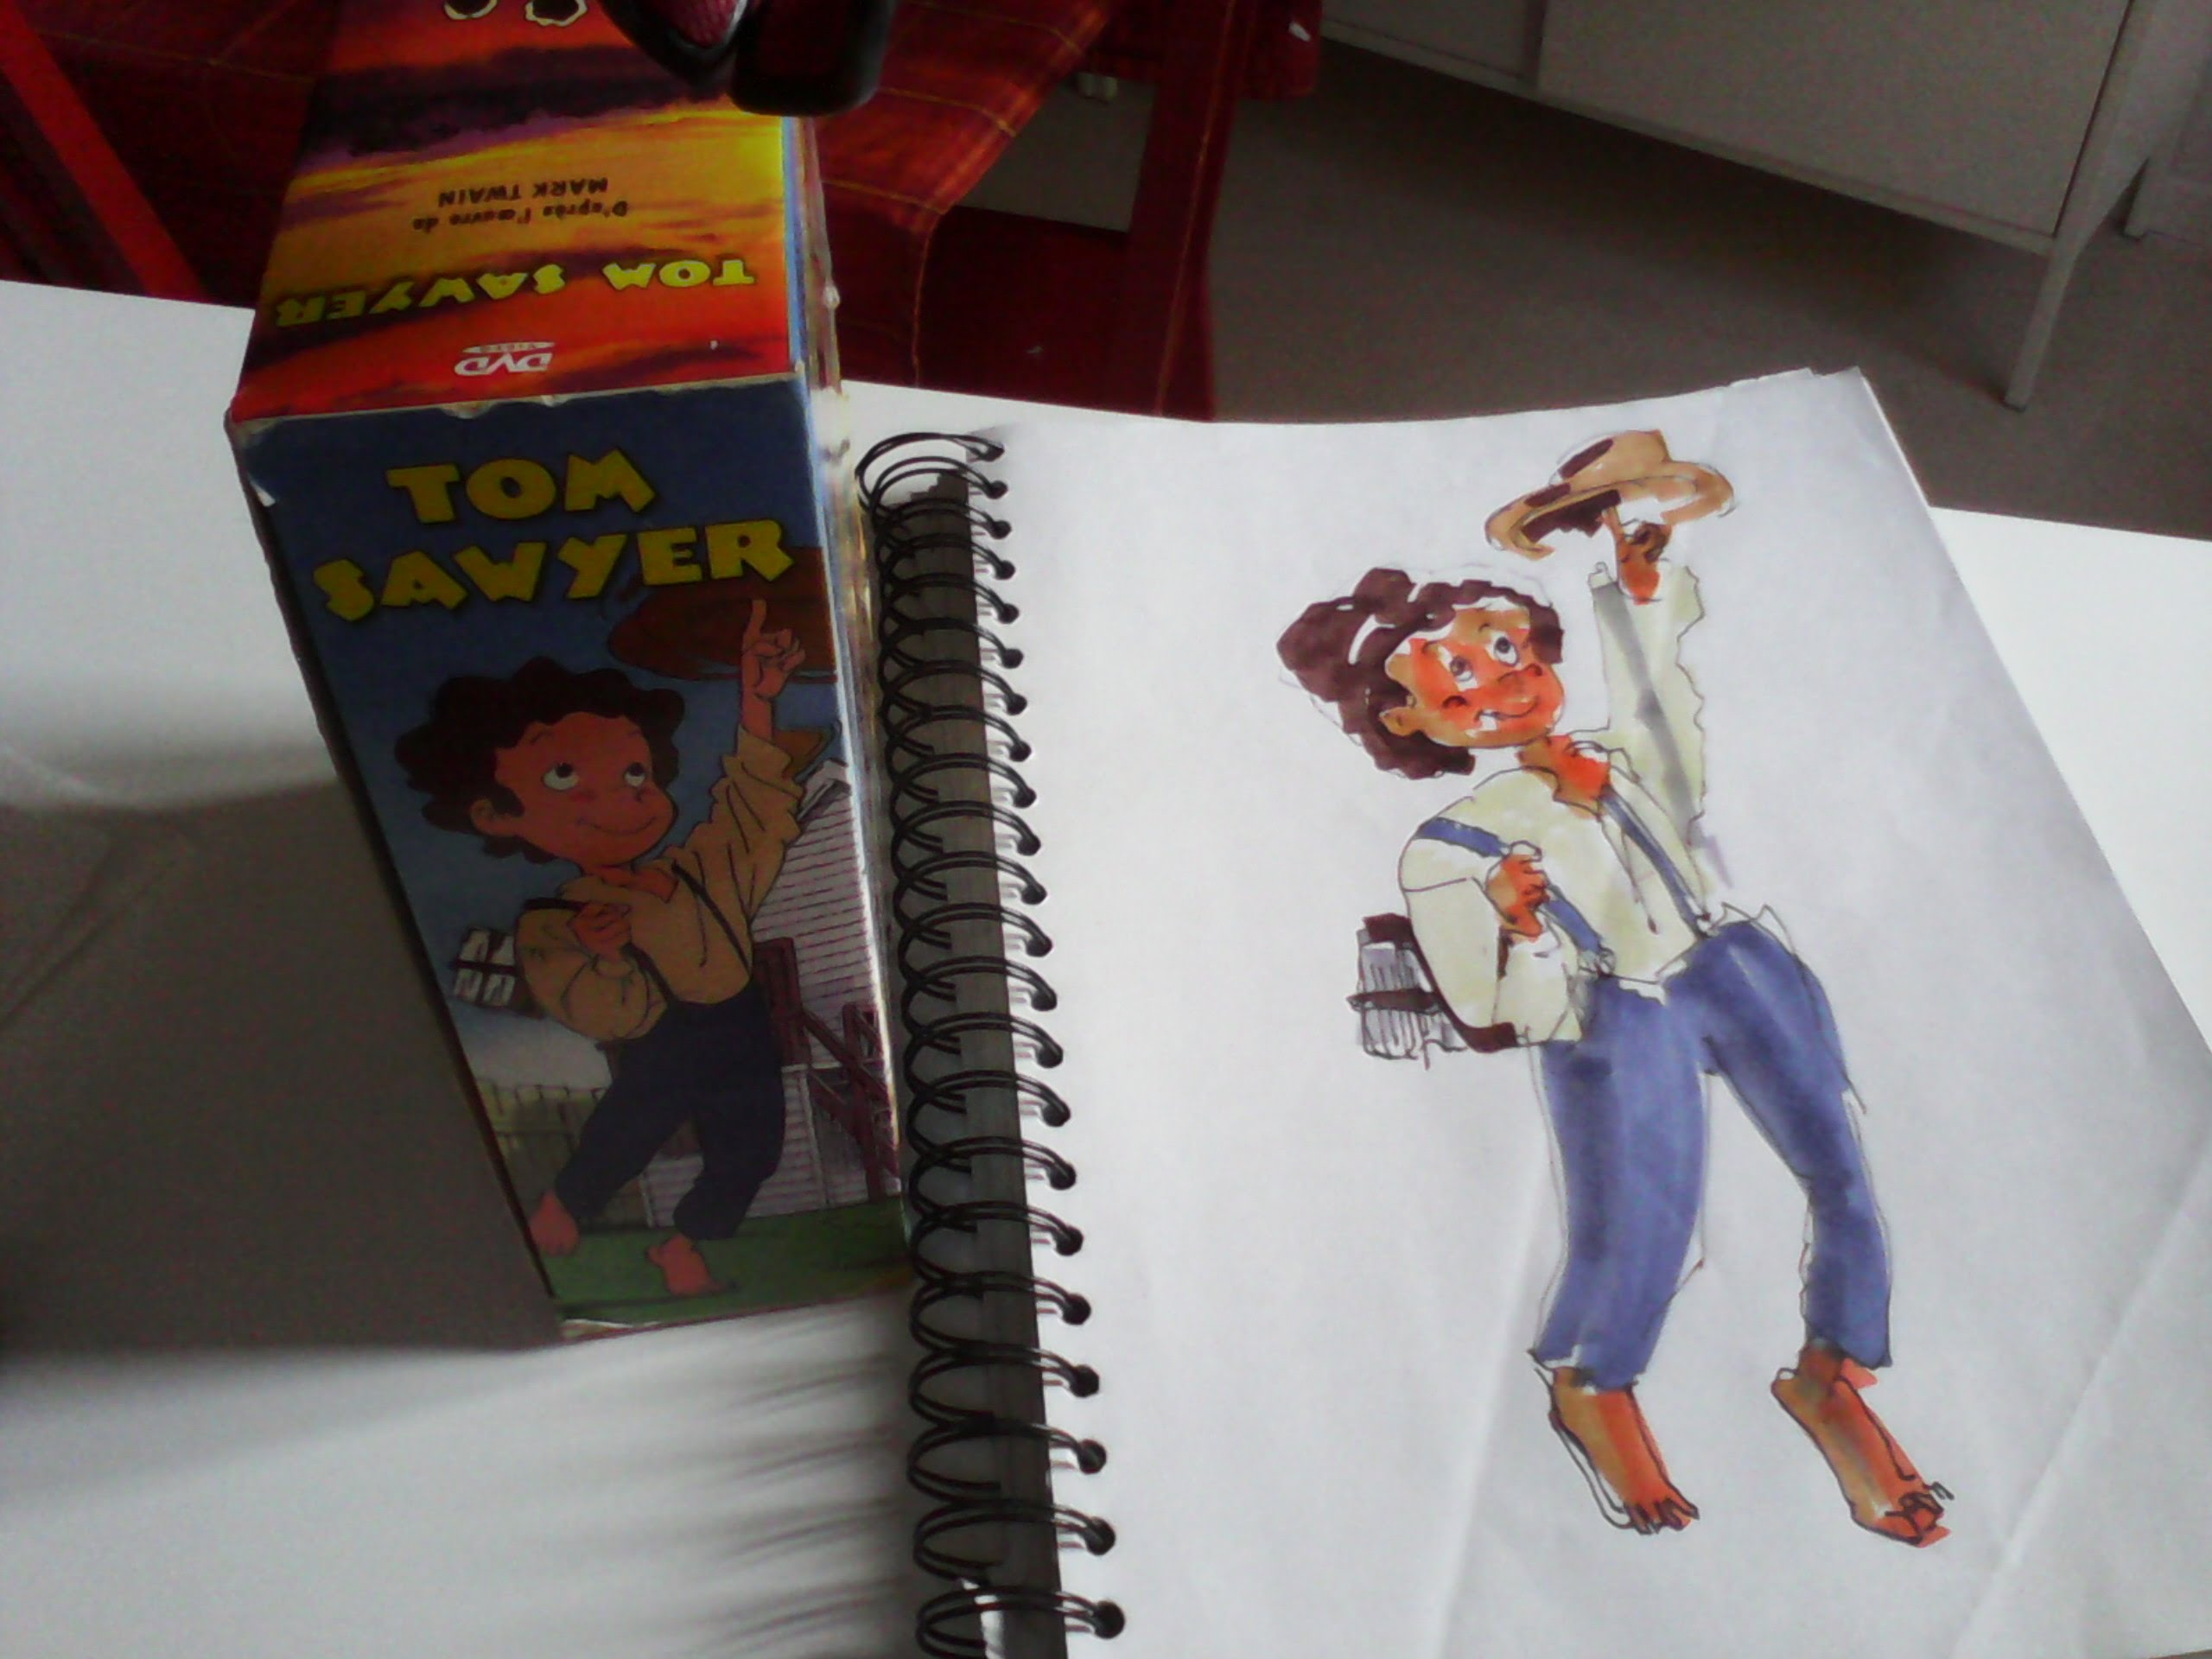 2560x1920 How To Draw Tom Sawyer